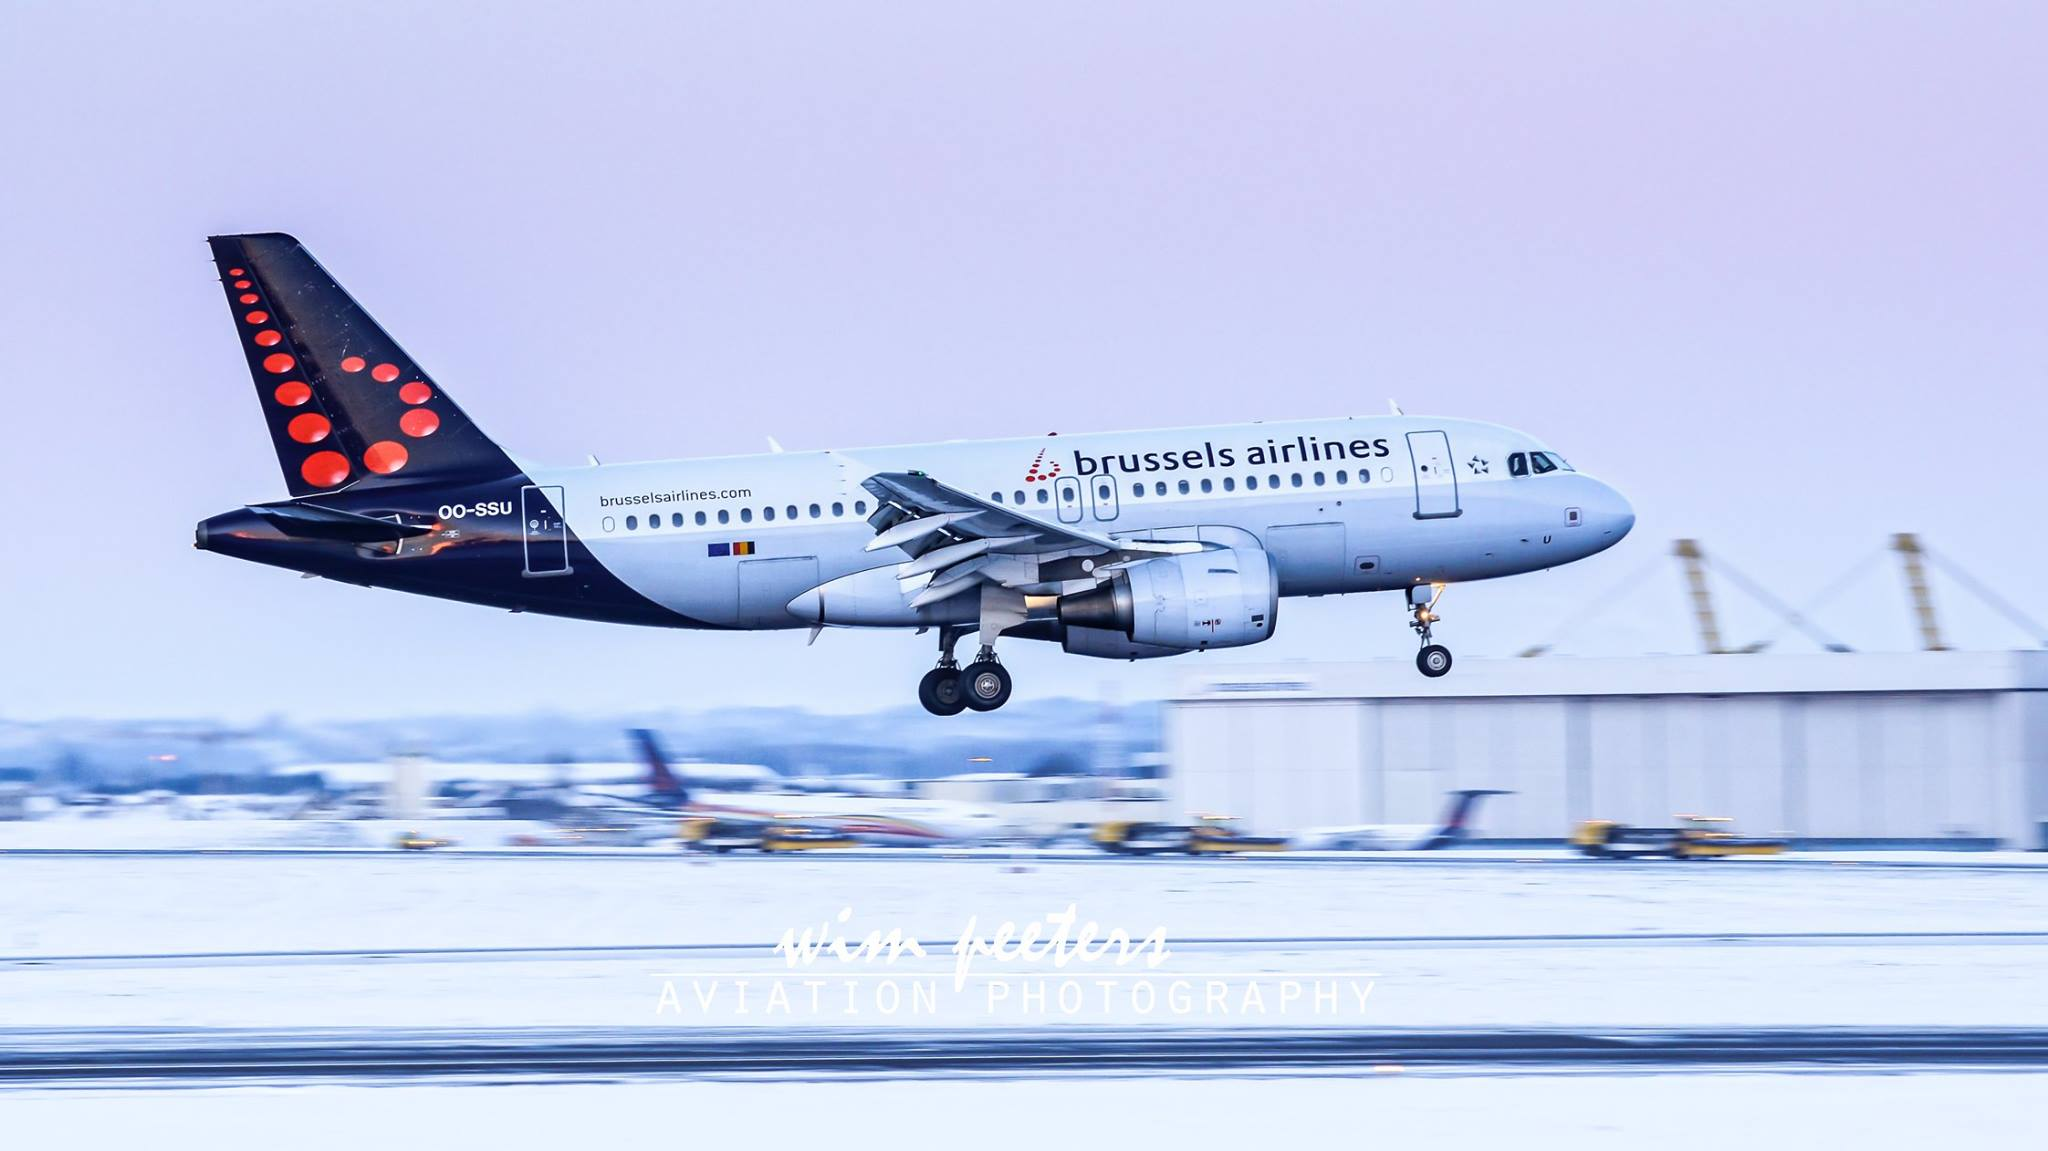 Brussels Airlines to operate a one-off Airbus A319 to